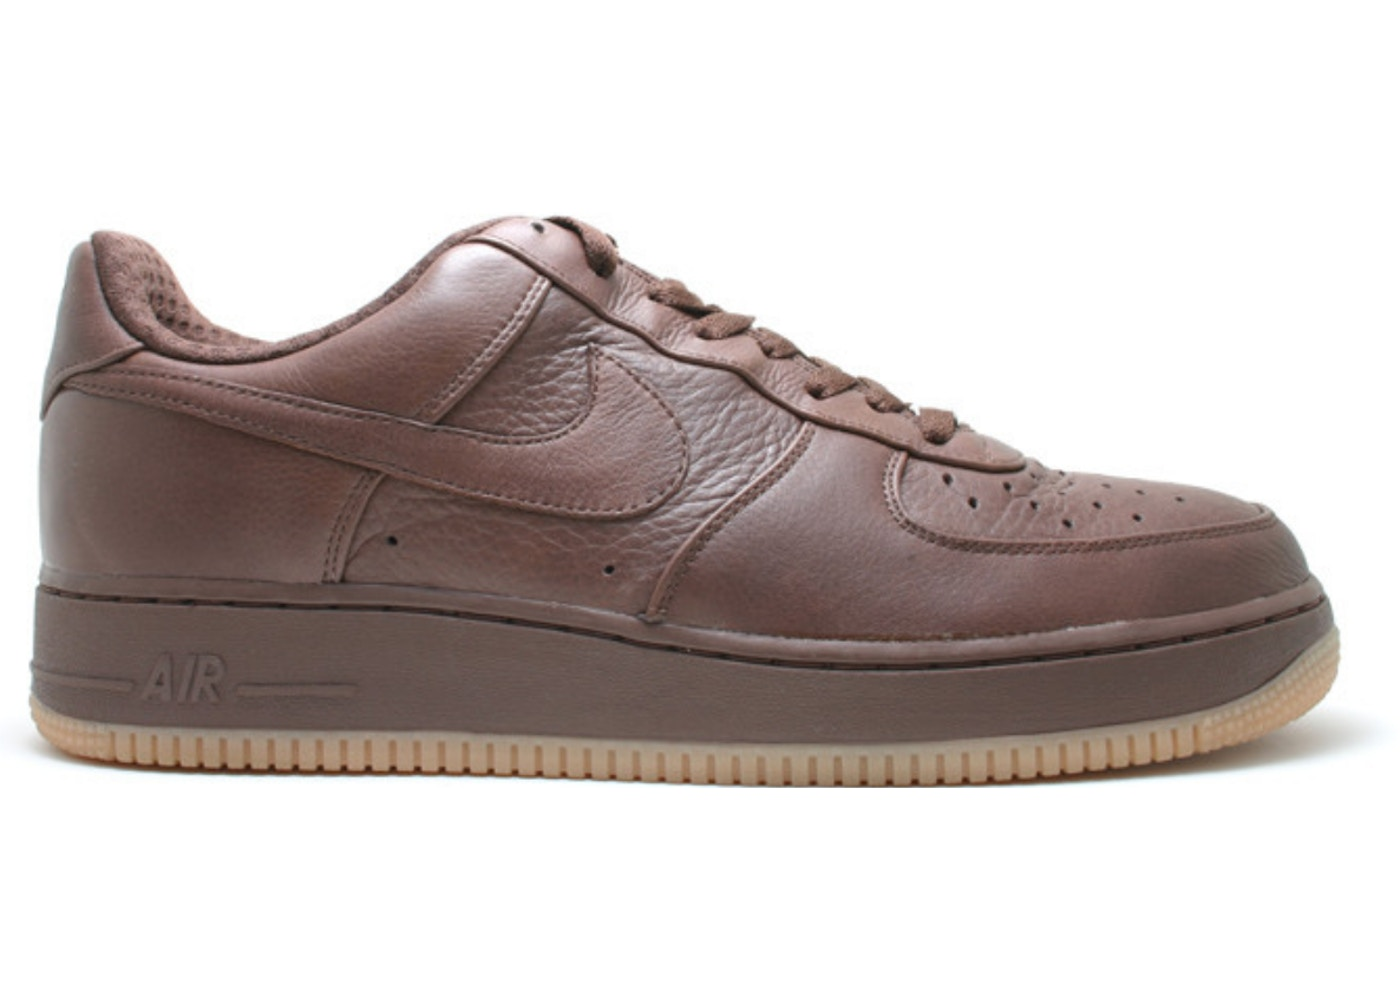 huge discount a15c2 29a5b Air Force 1 Low Light Chocolate - 315180-221